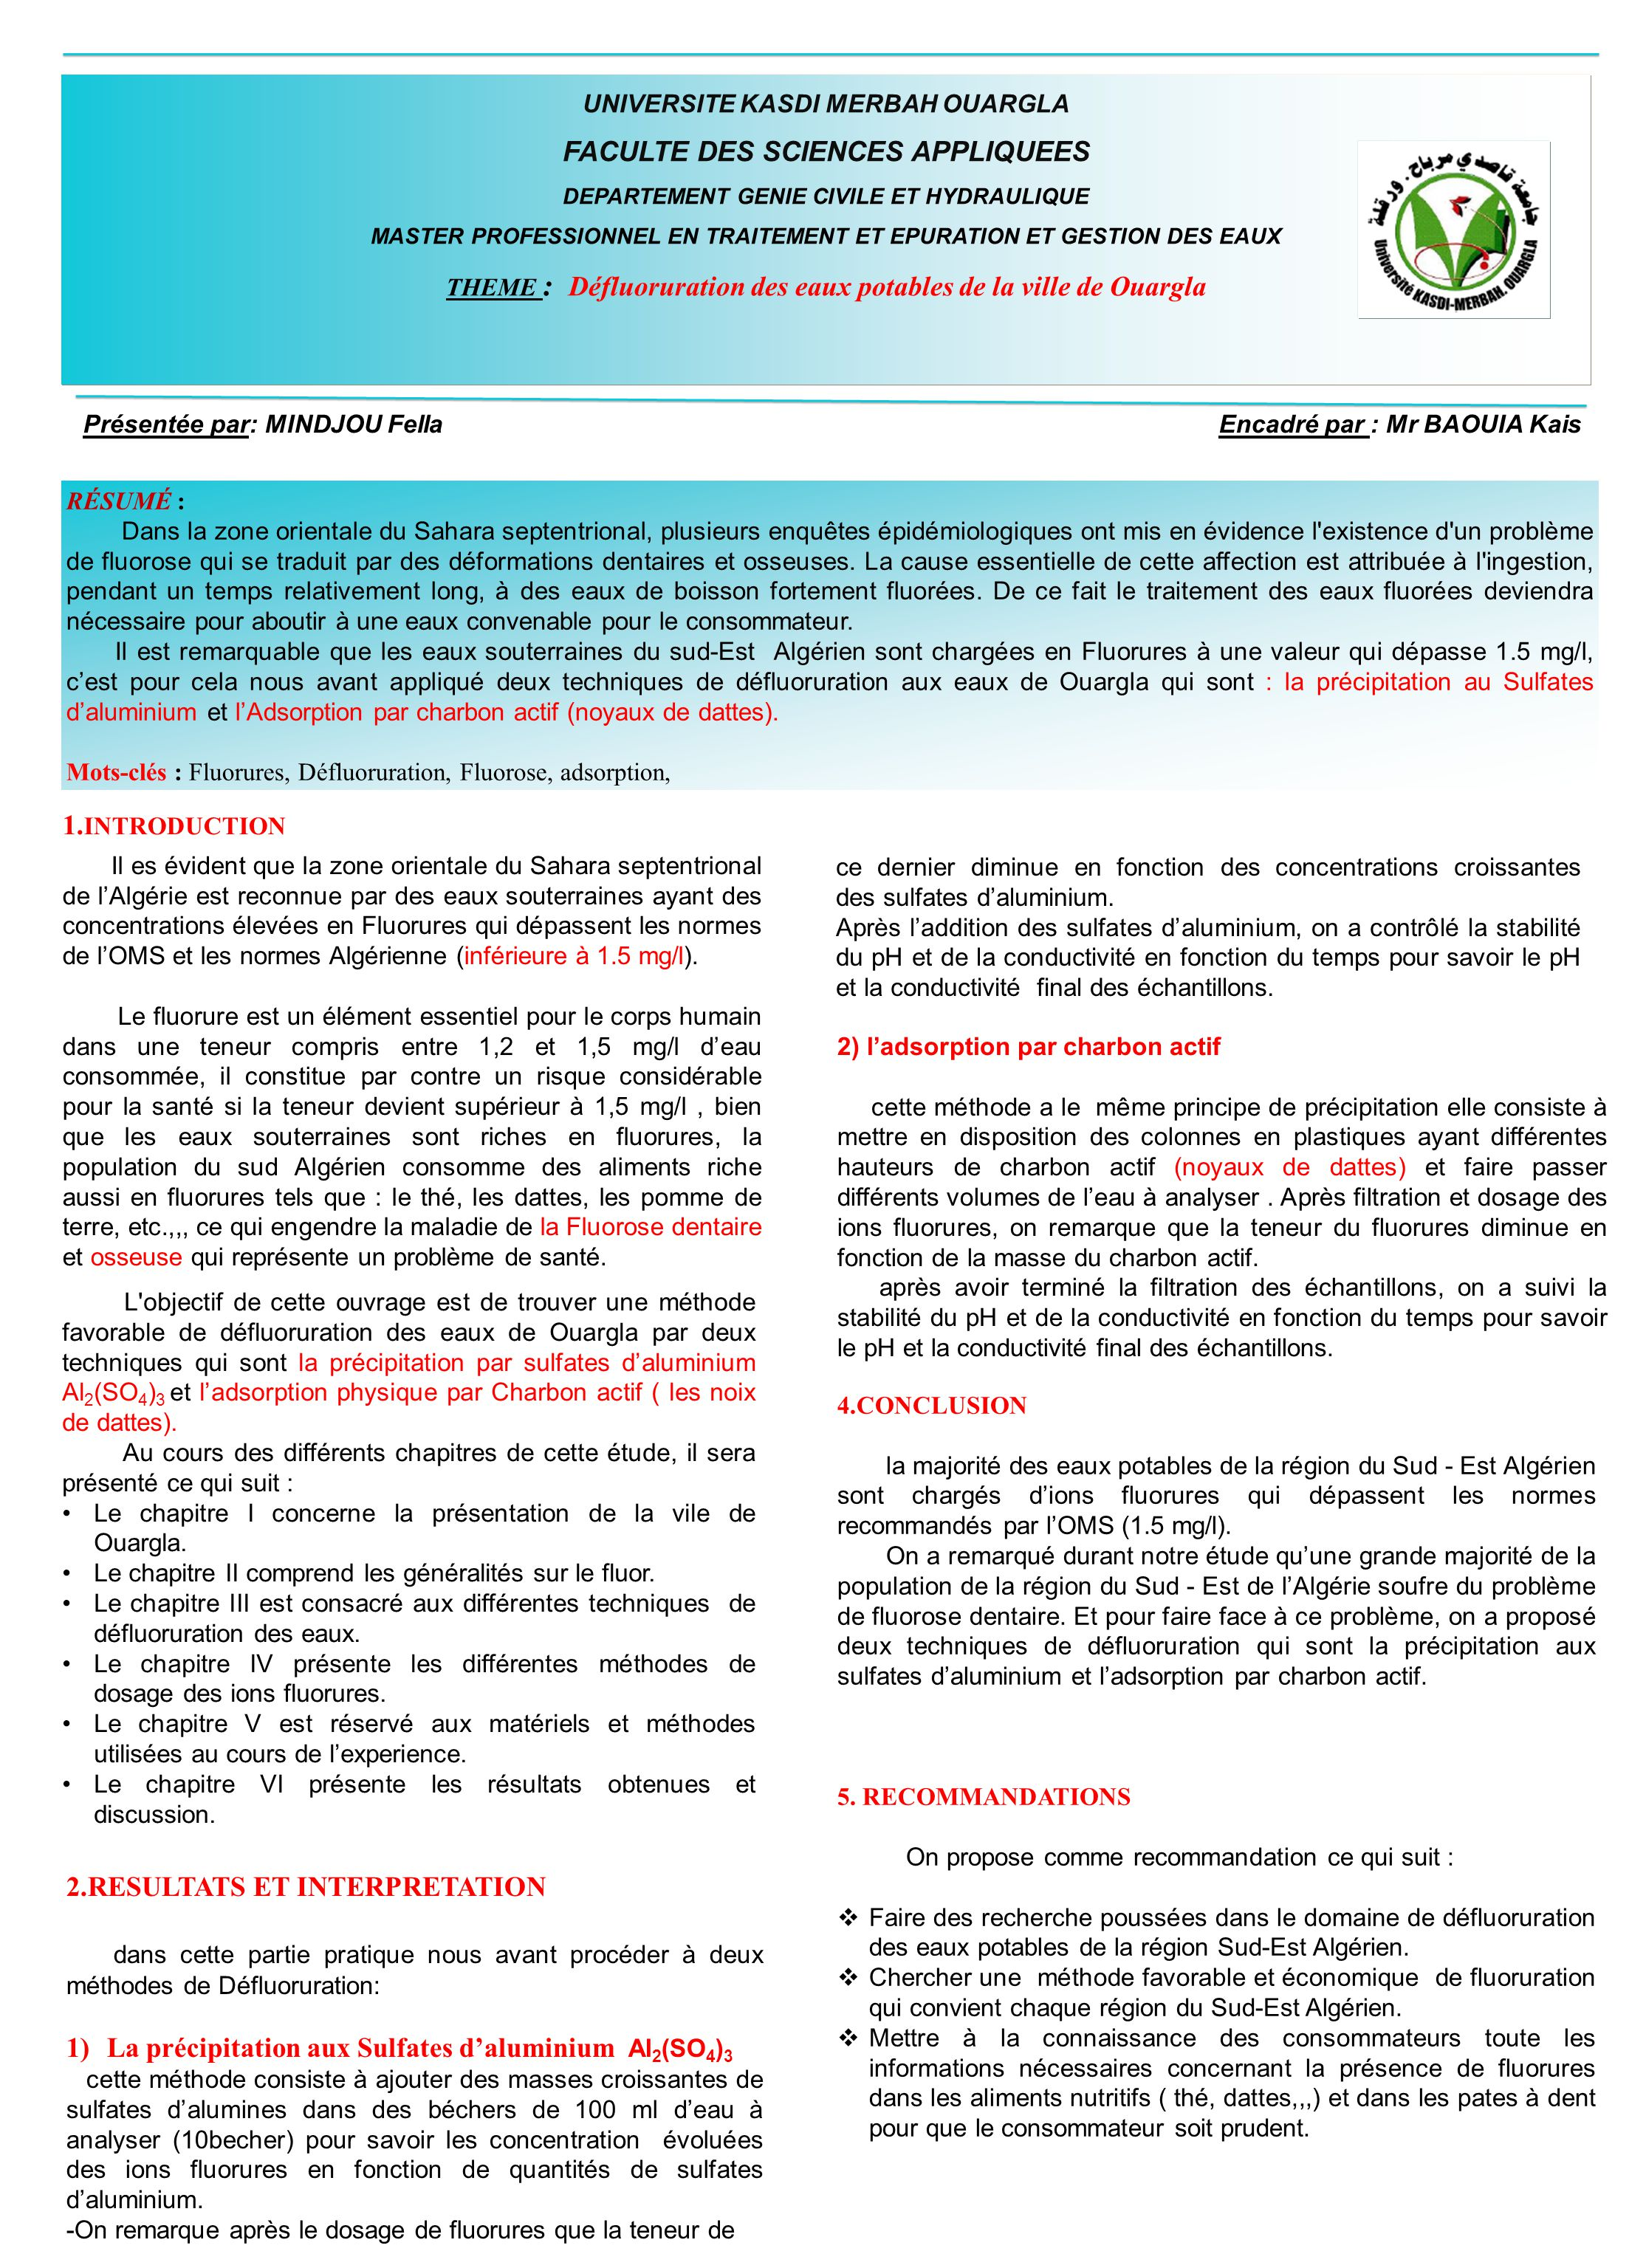 faculte des sciences appliquees